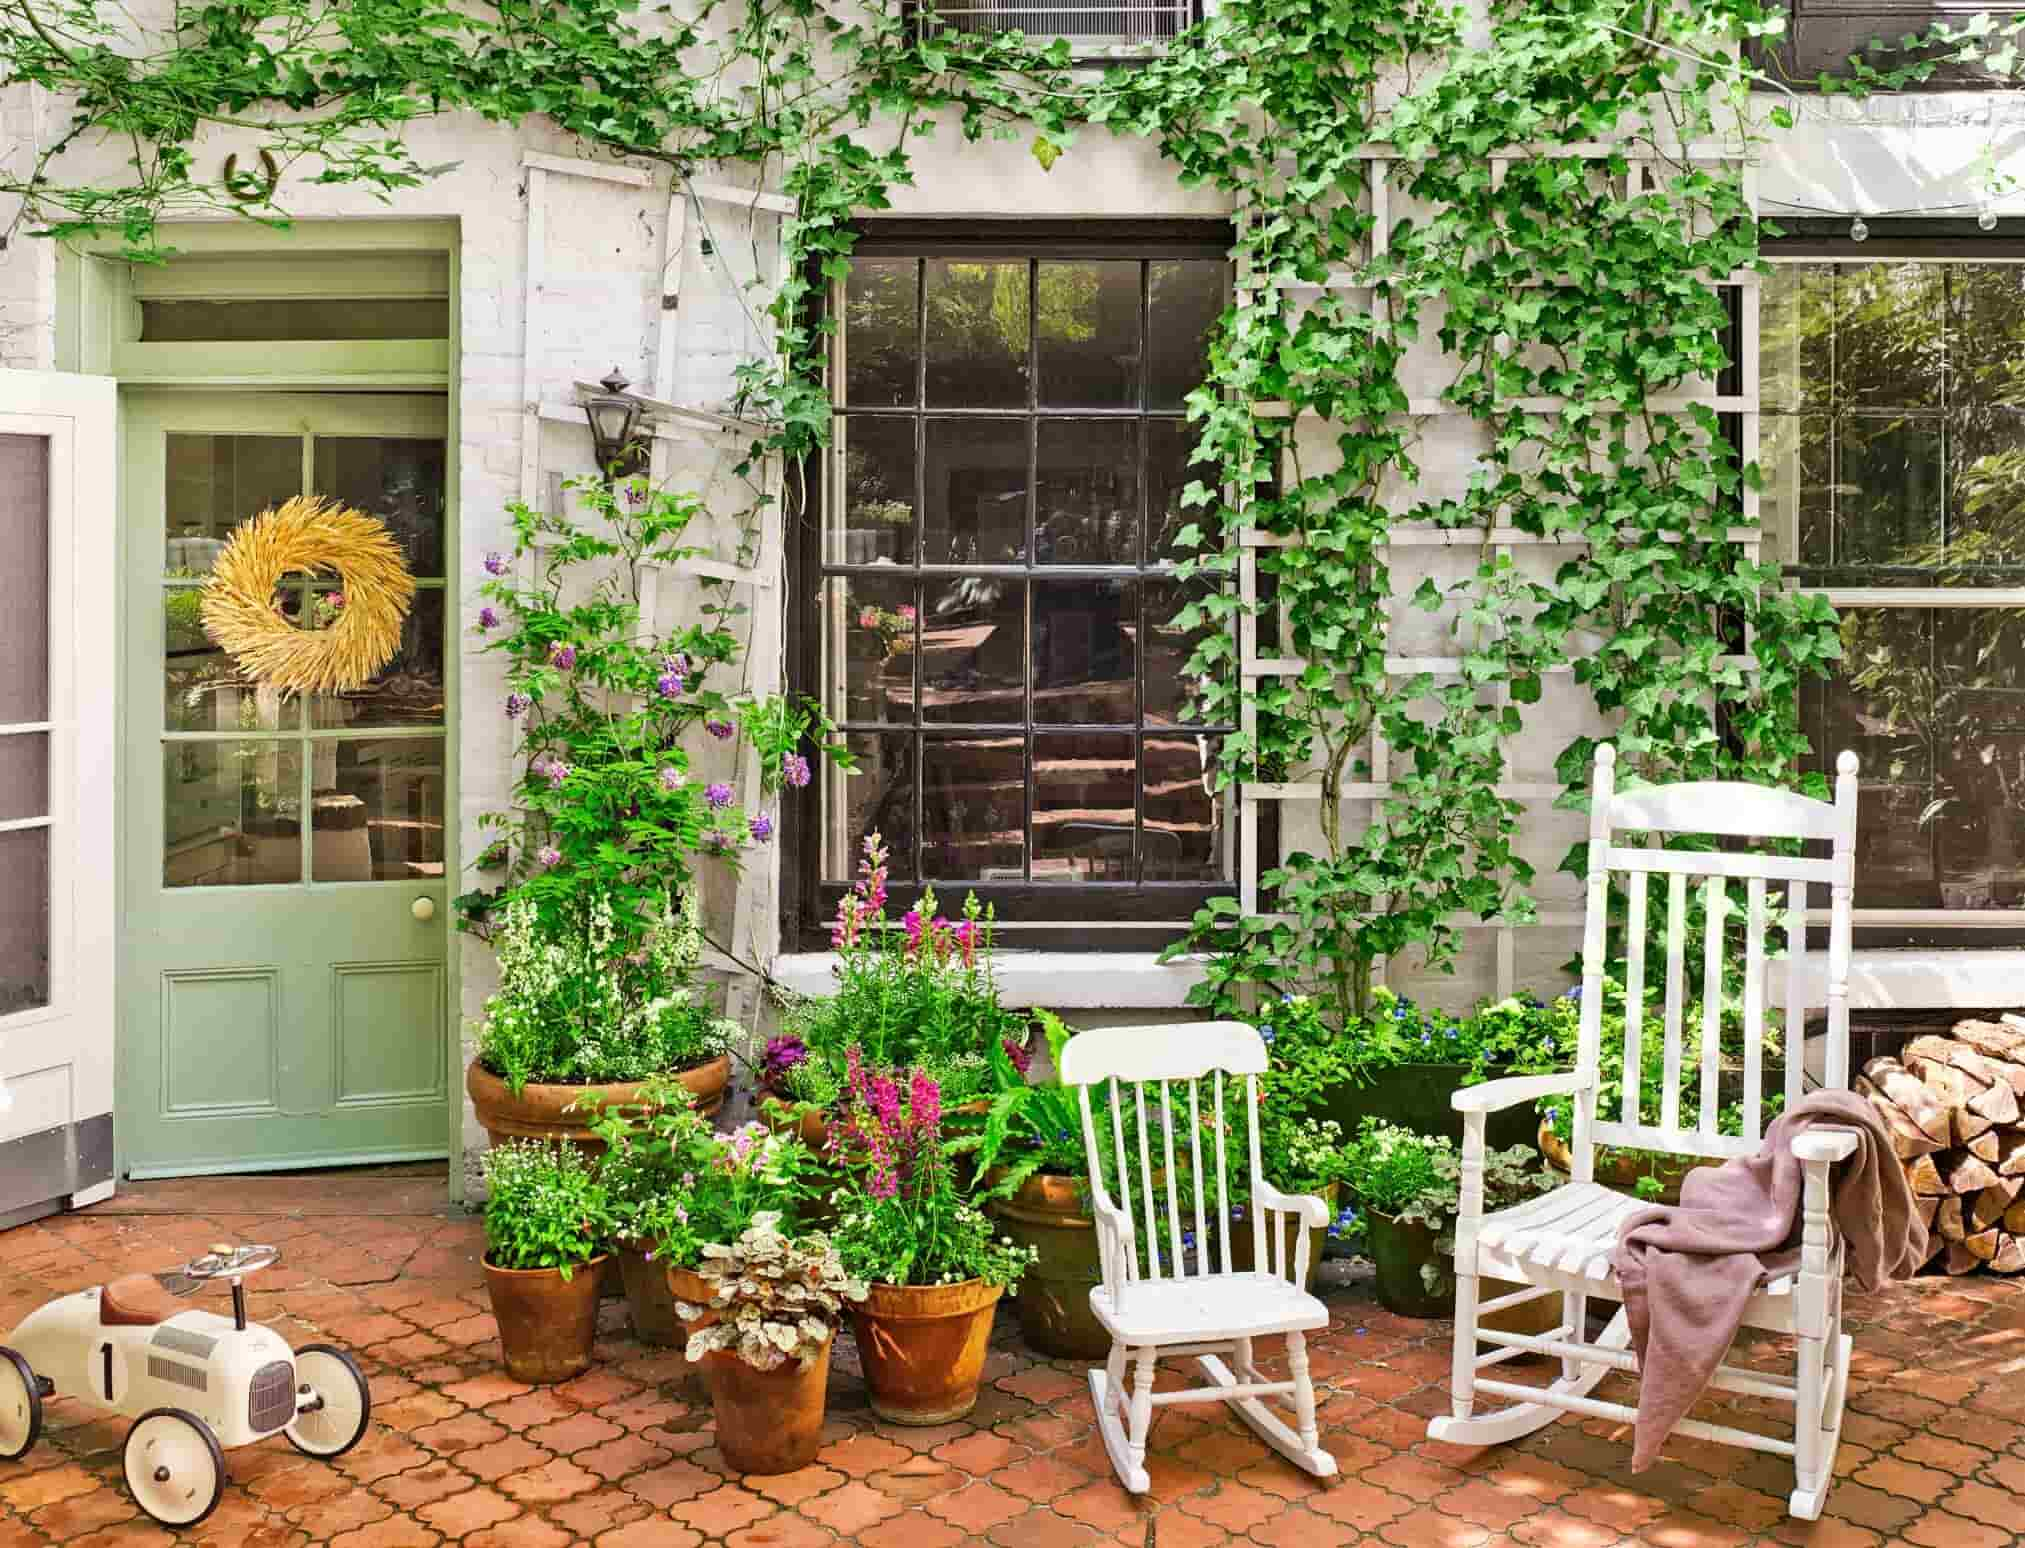 Easy Ways That You Can Be Even More Green at Home